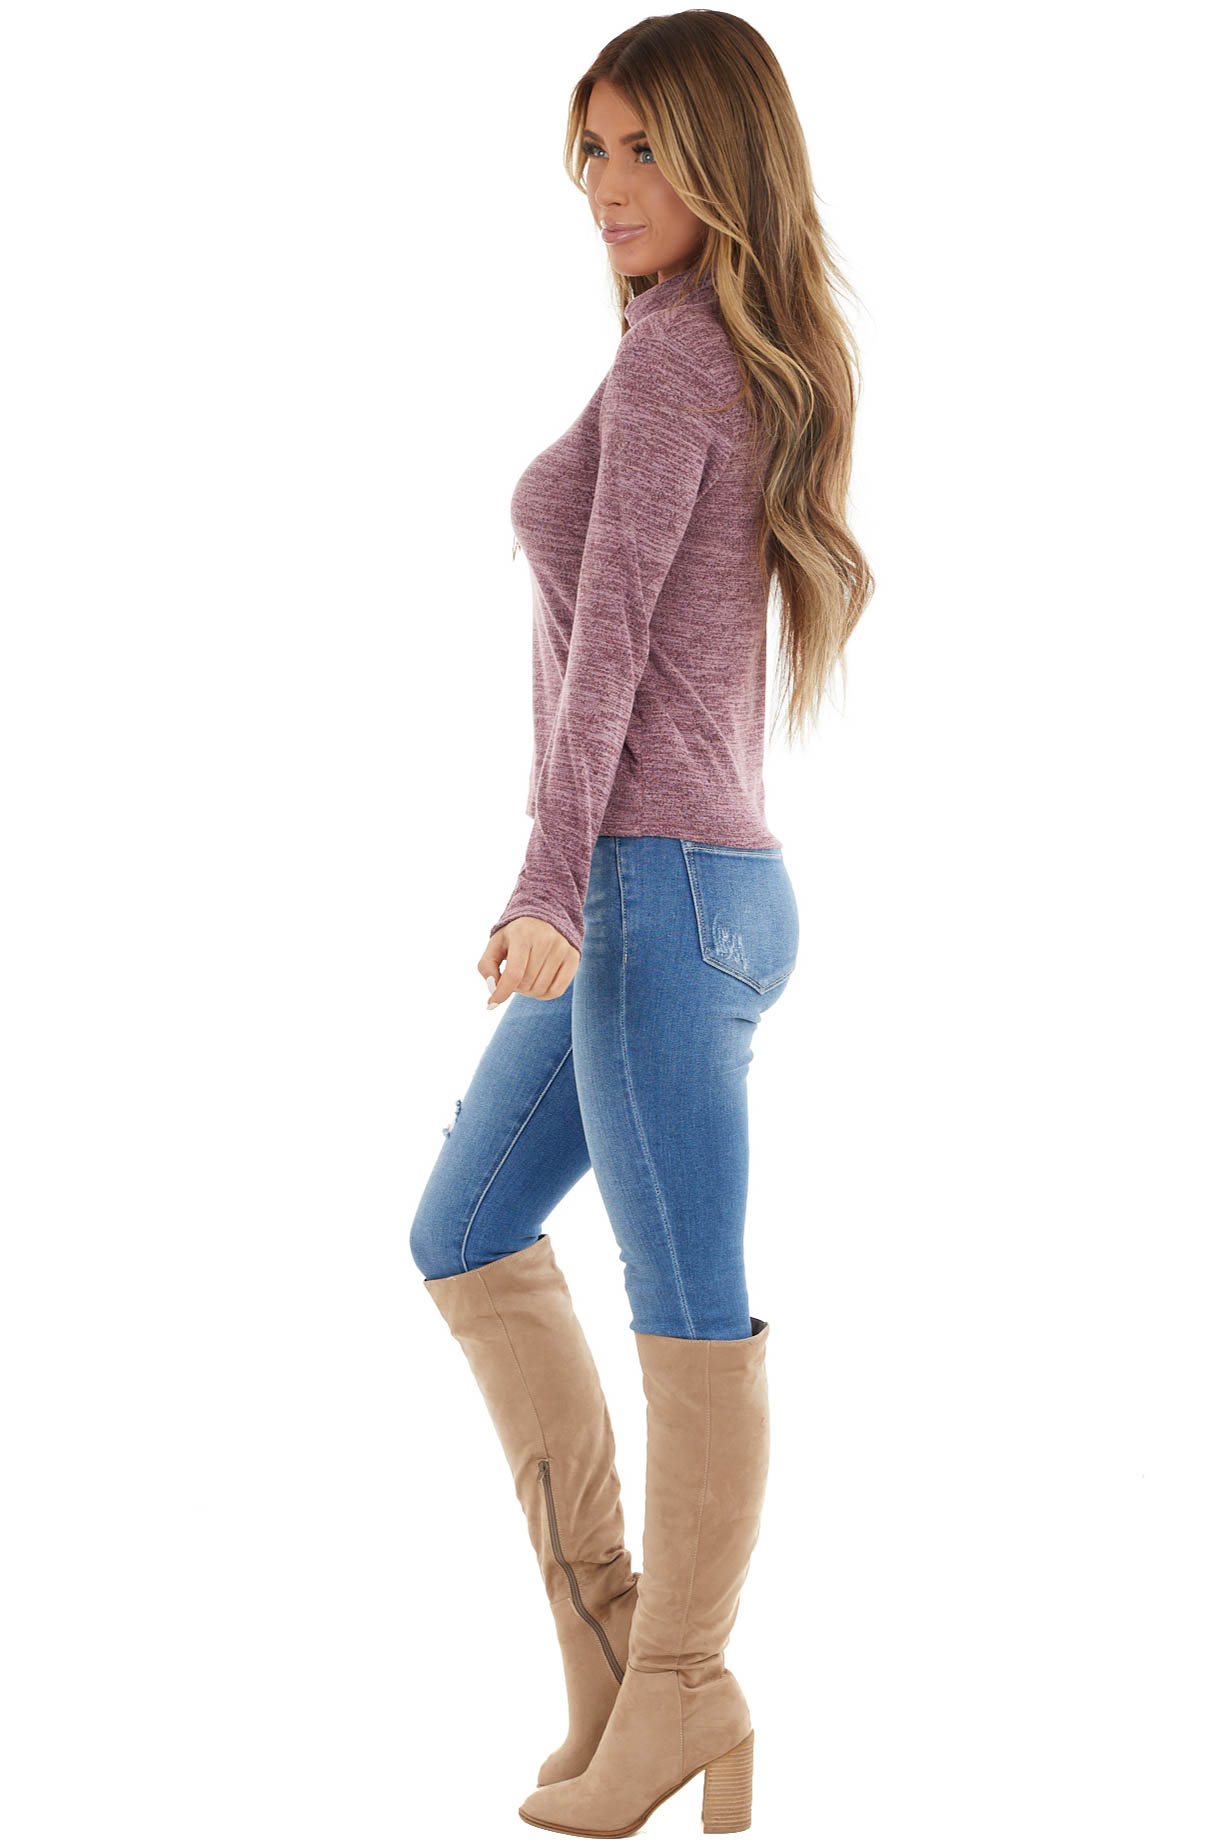 Heathered Mauve Fitted Long Sleeve Top with Turtleneck